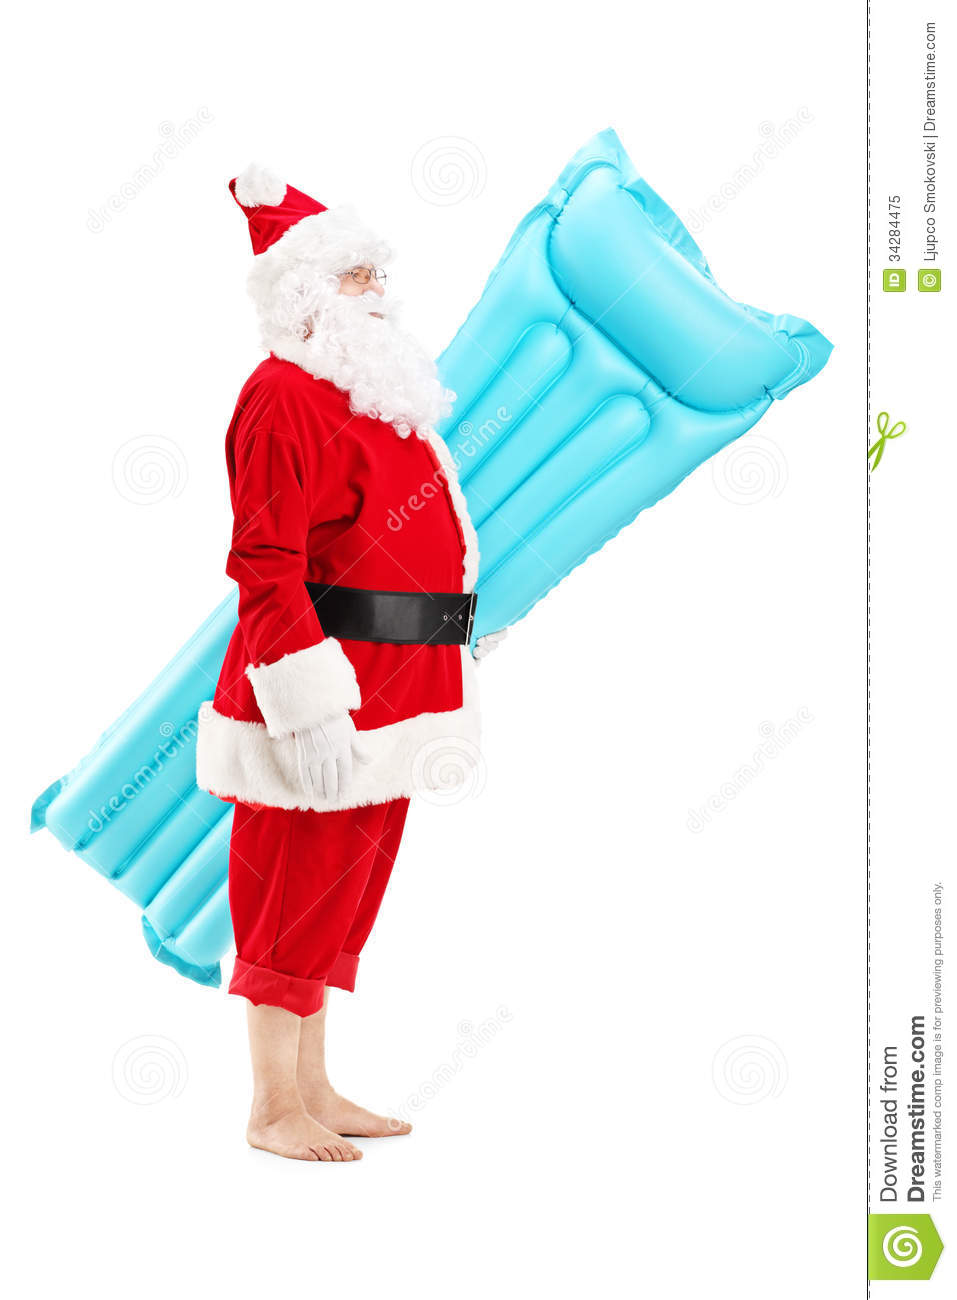 Santa Claus Holding A Swimming Mattress On Vacation Royalty Free Stock ...